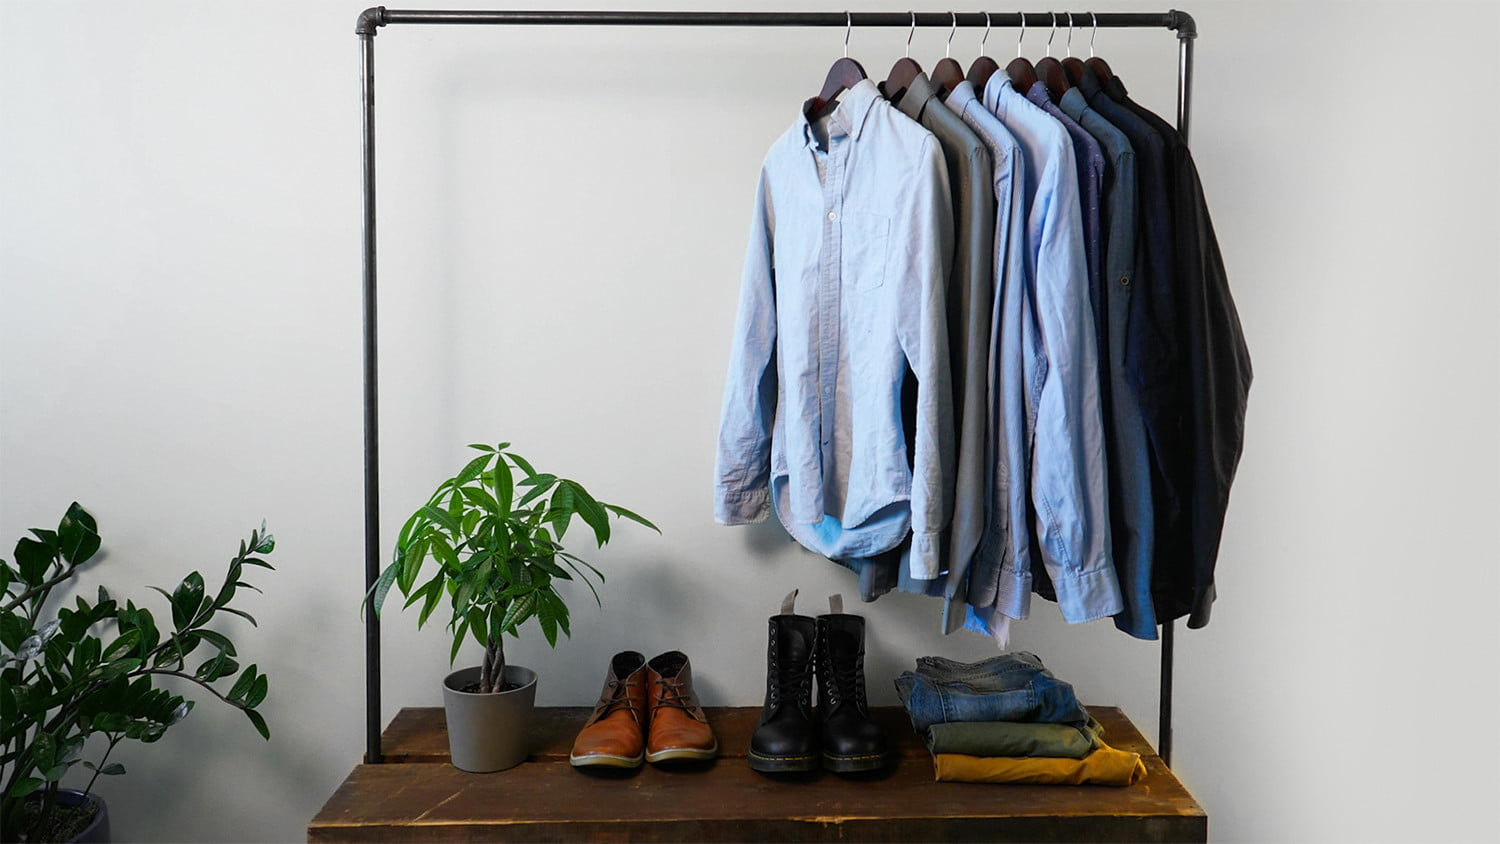 You can build this industrial clothes rack in a weekend. We'll show you how